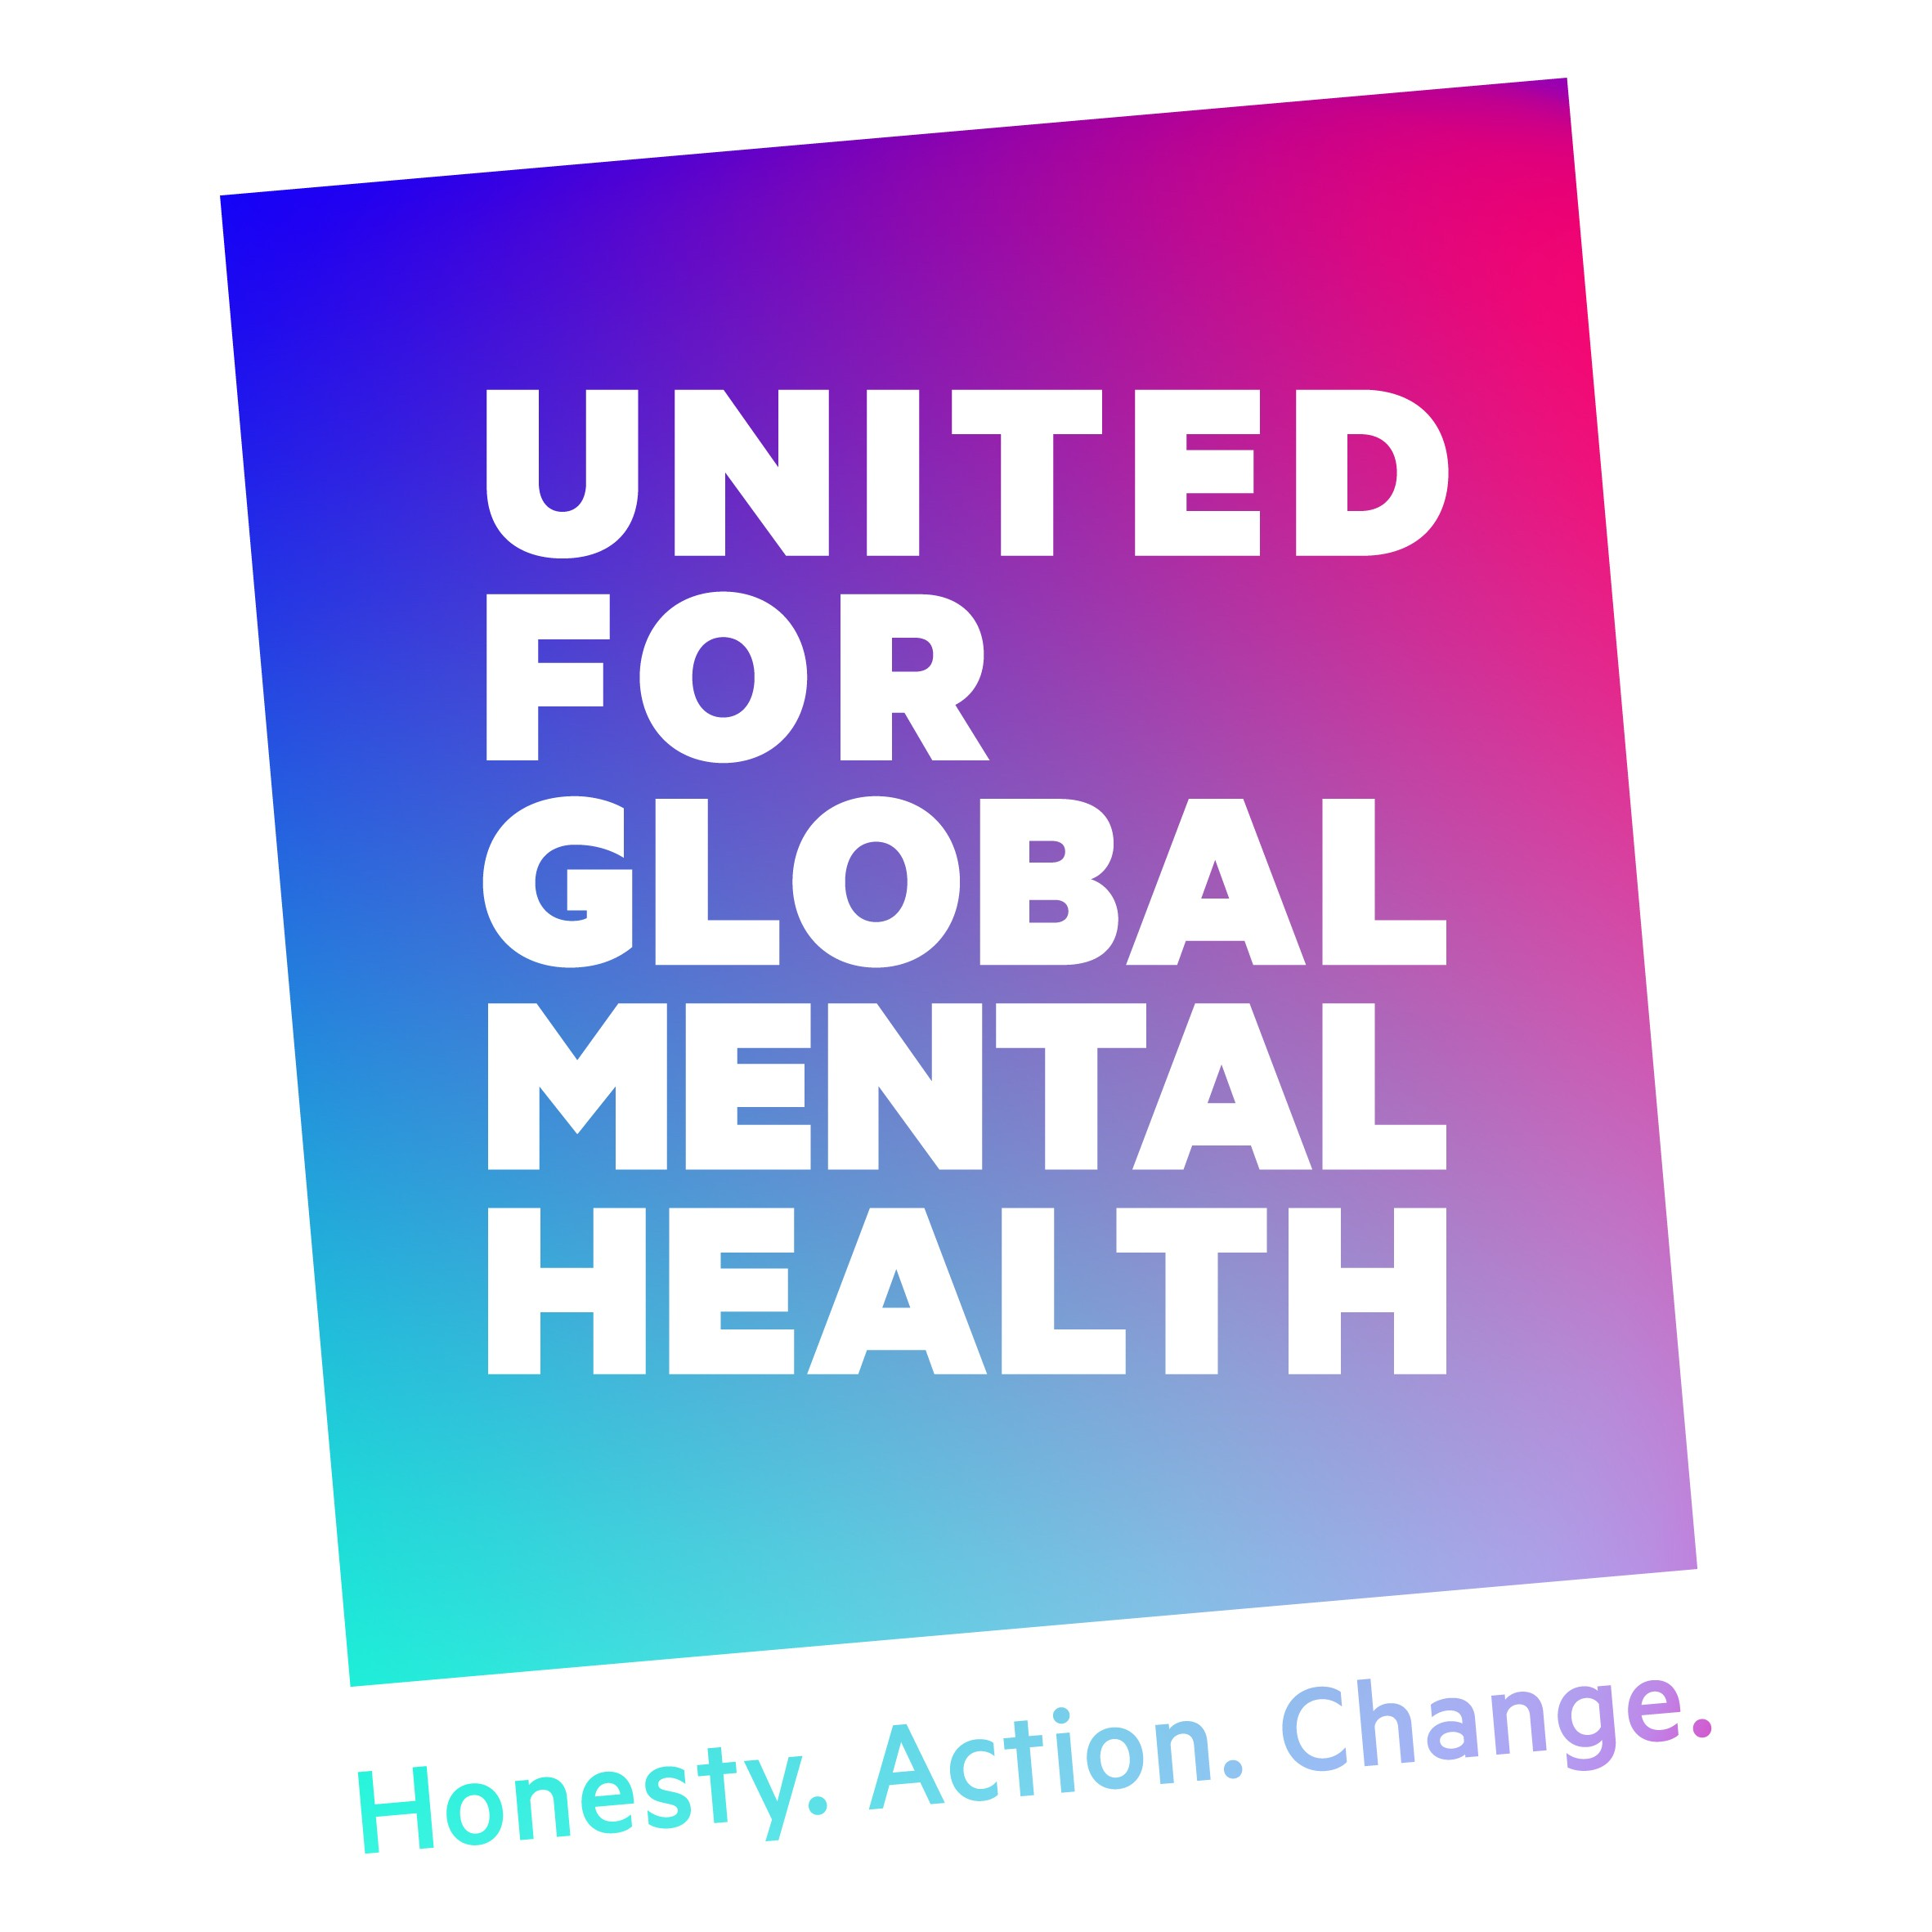 United for global mental health